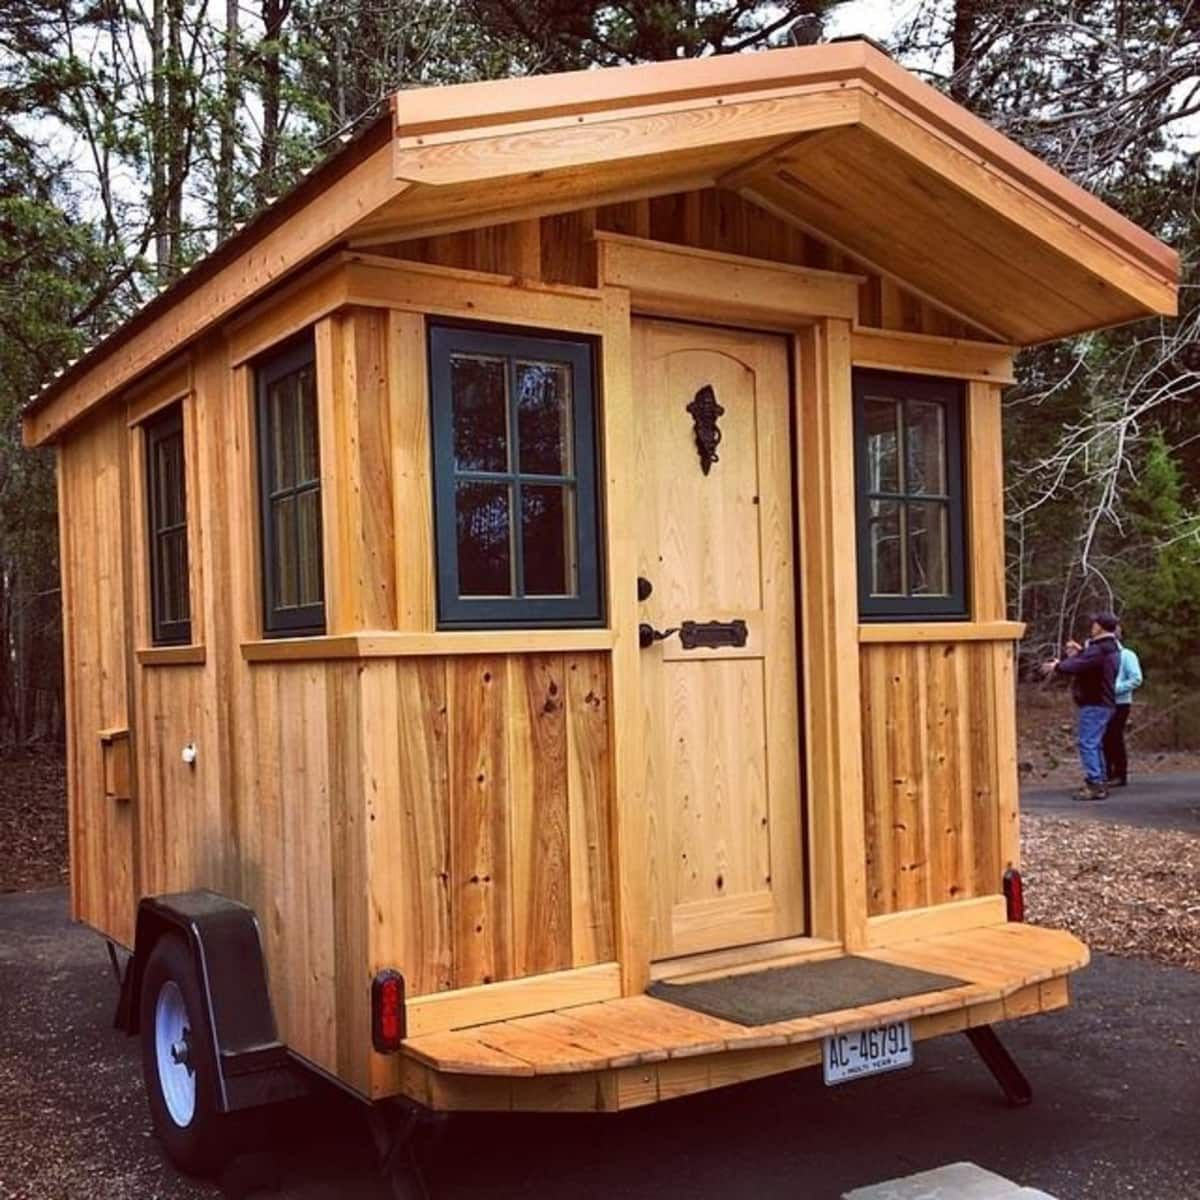 Carpenters Tiny Home For Sale Tiny House For Sale In